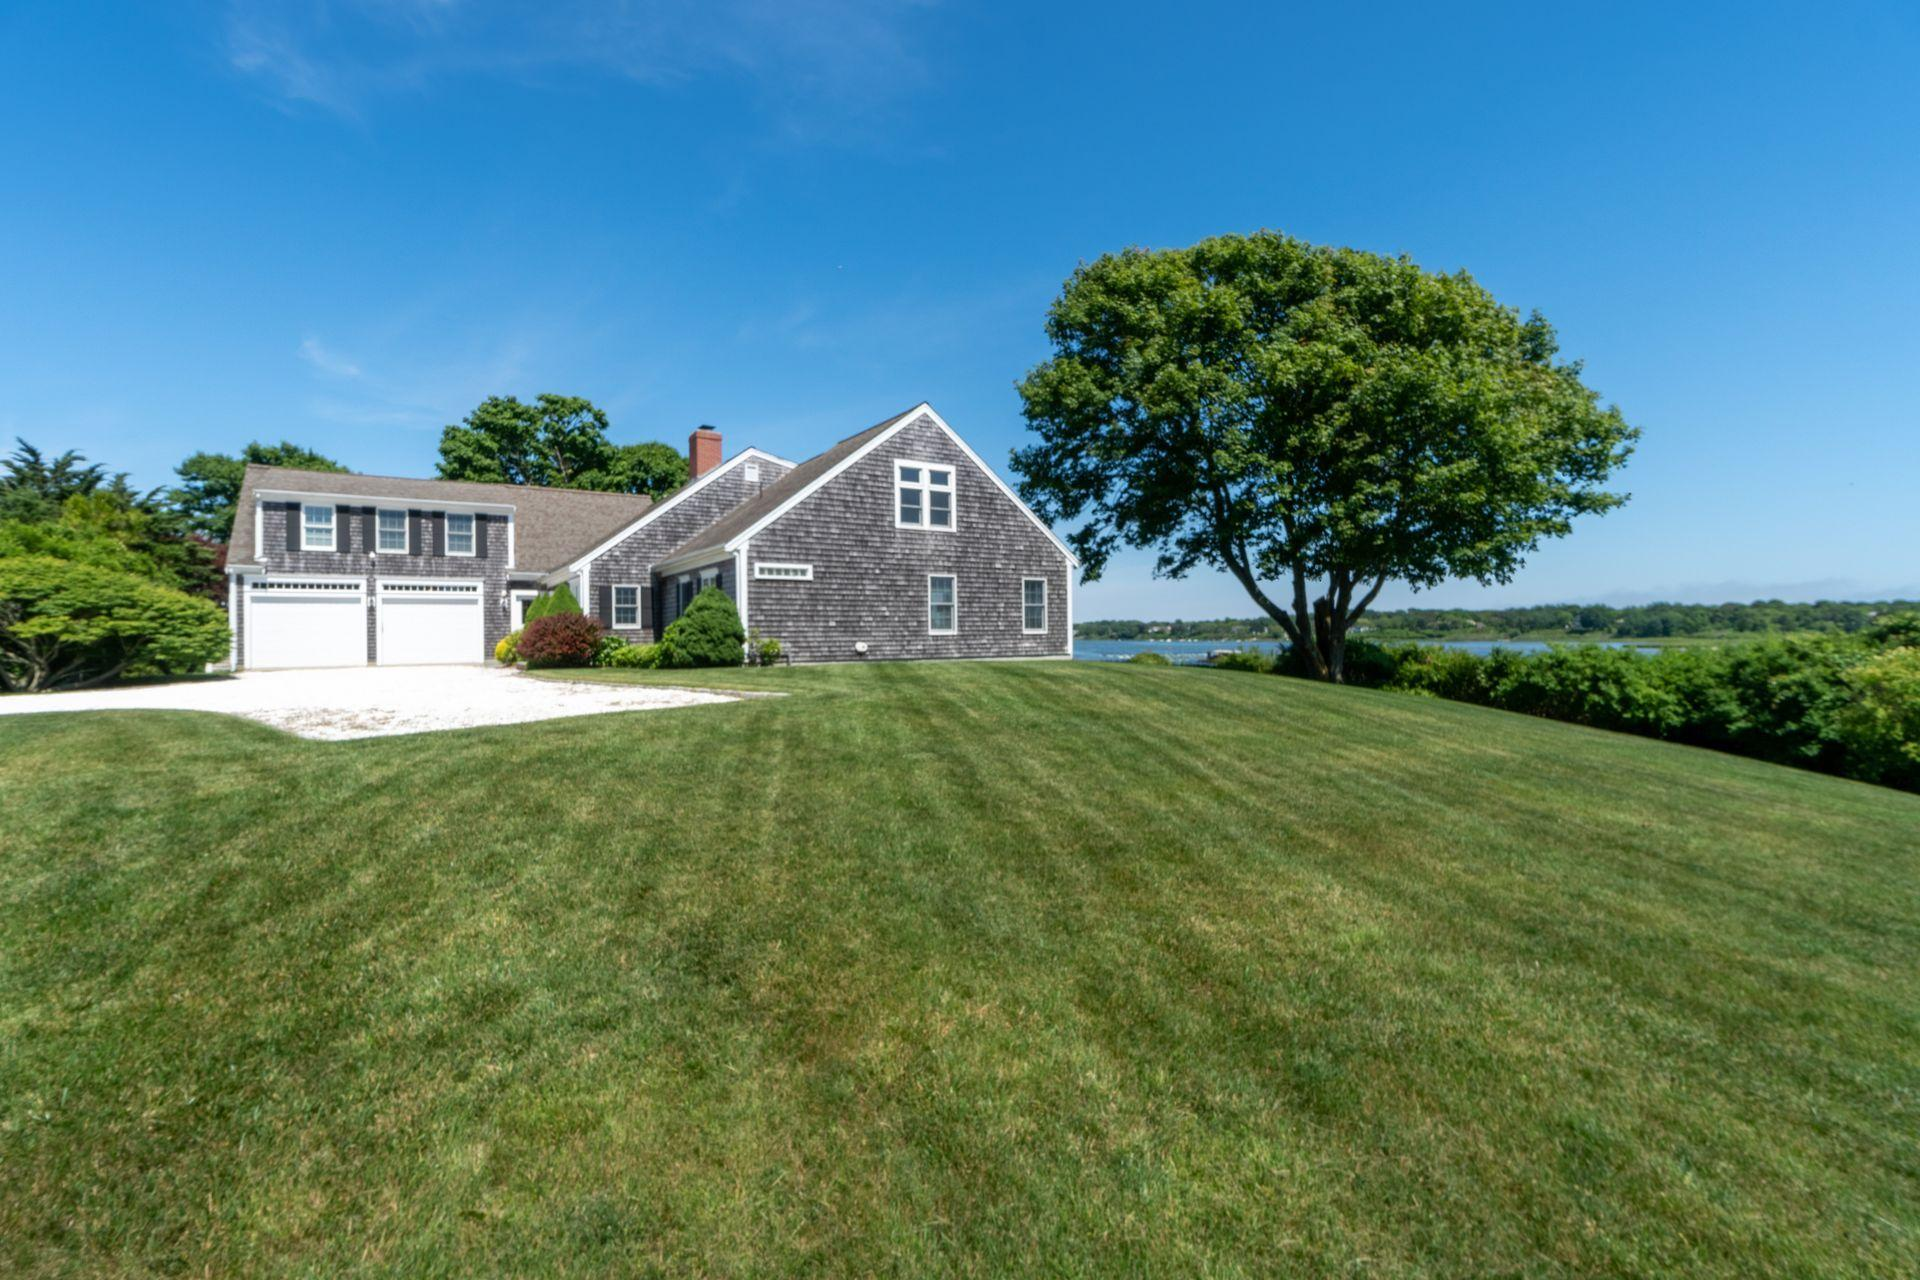 click to view more details 161 Kelley Lane, Chatham, MA 02633